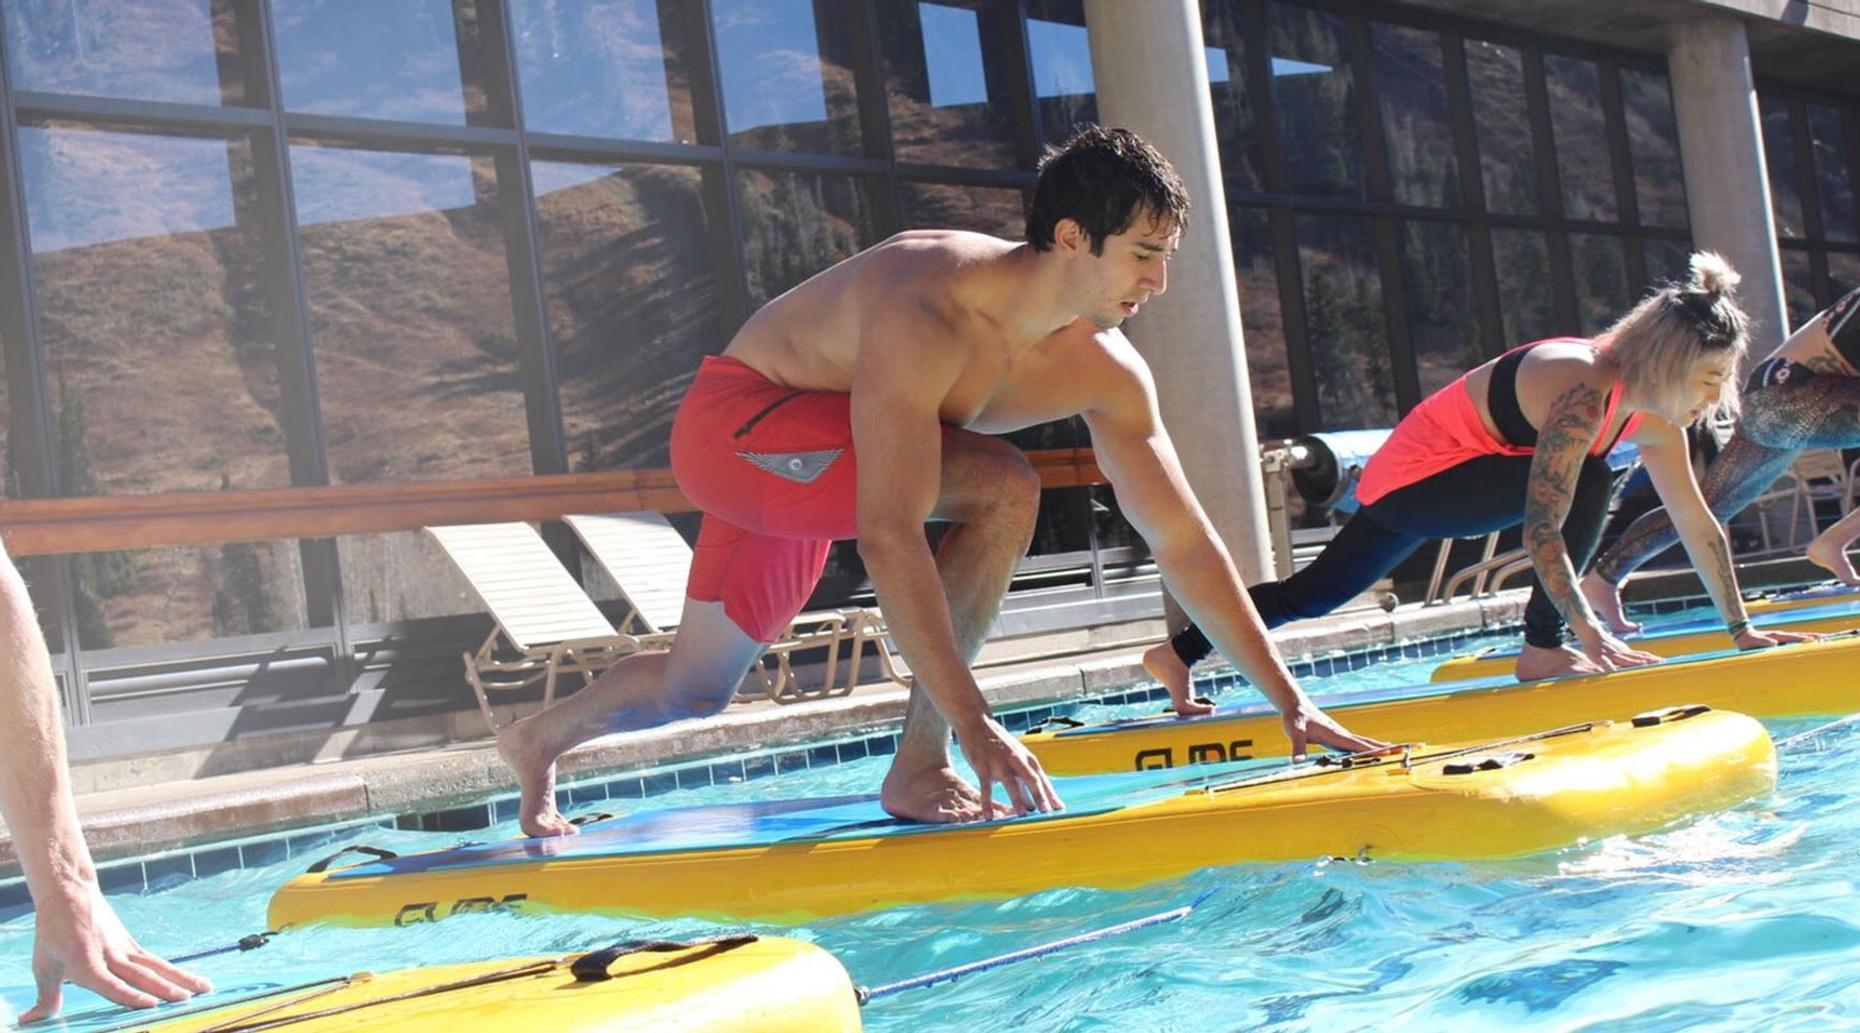 Stand-up Paddleboard Yoga in the Pool